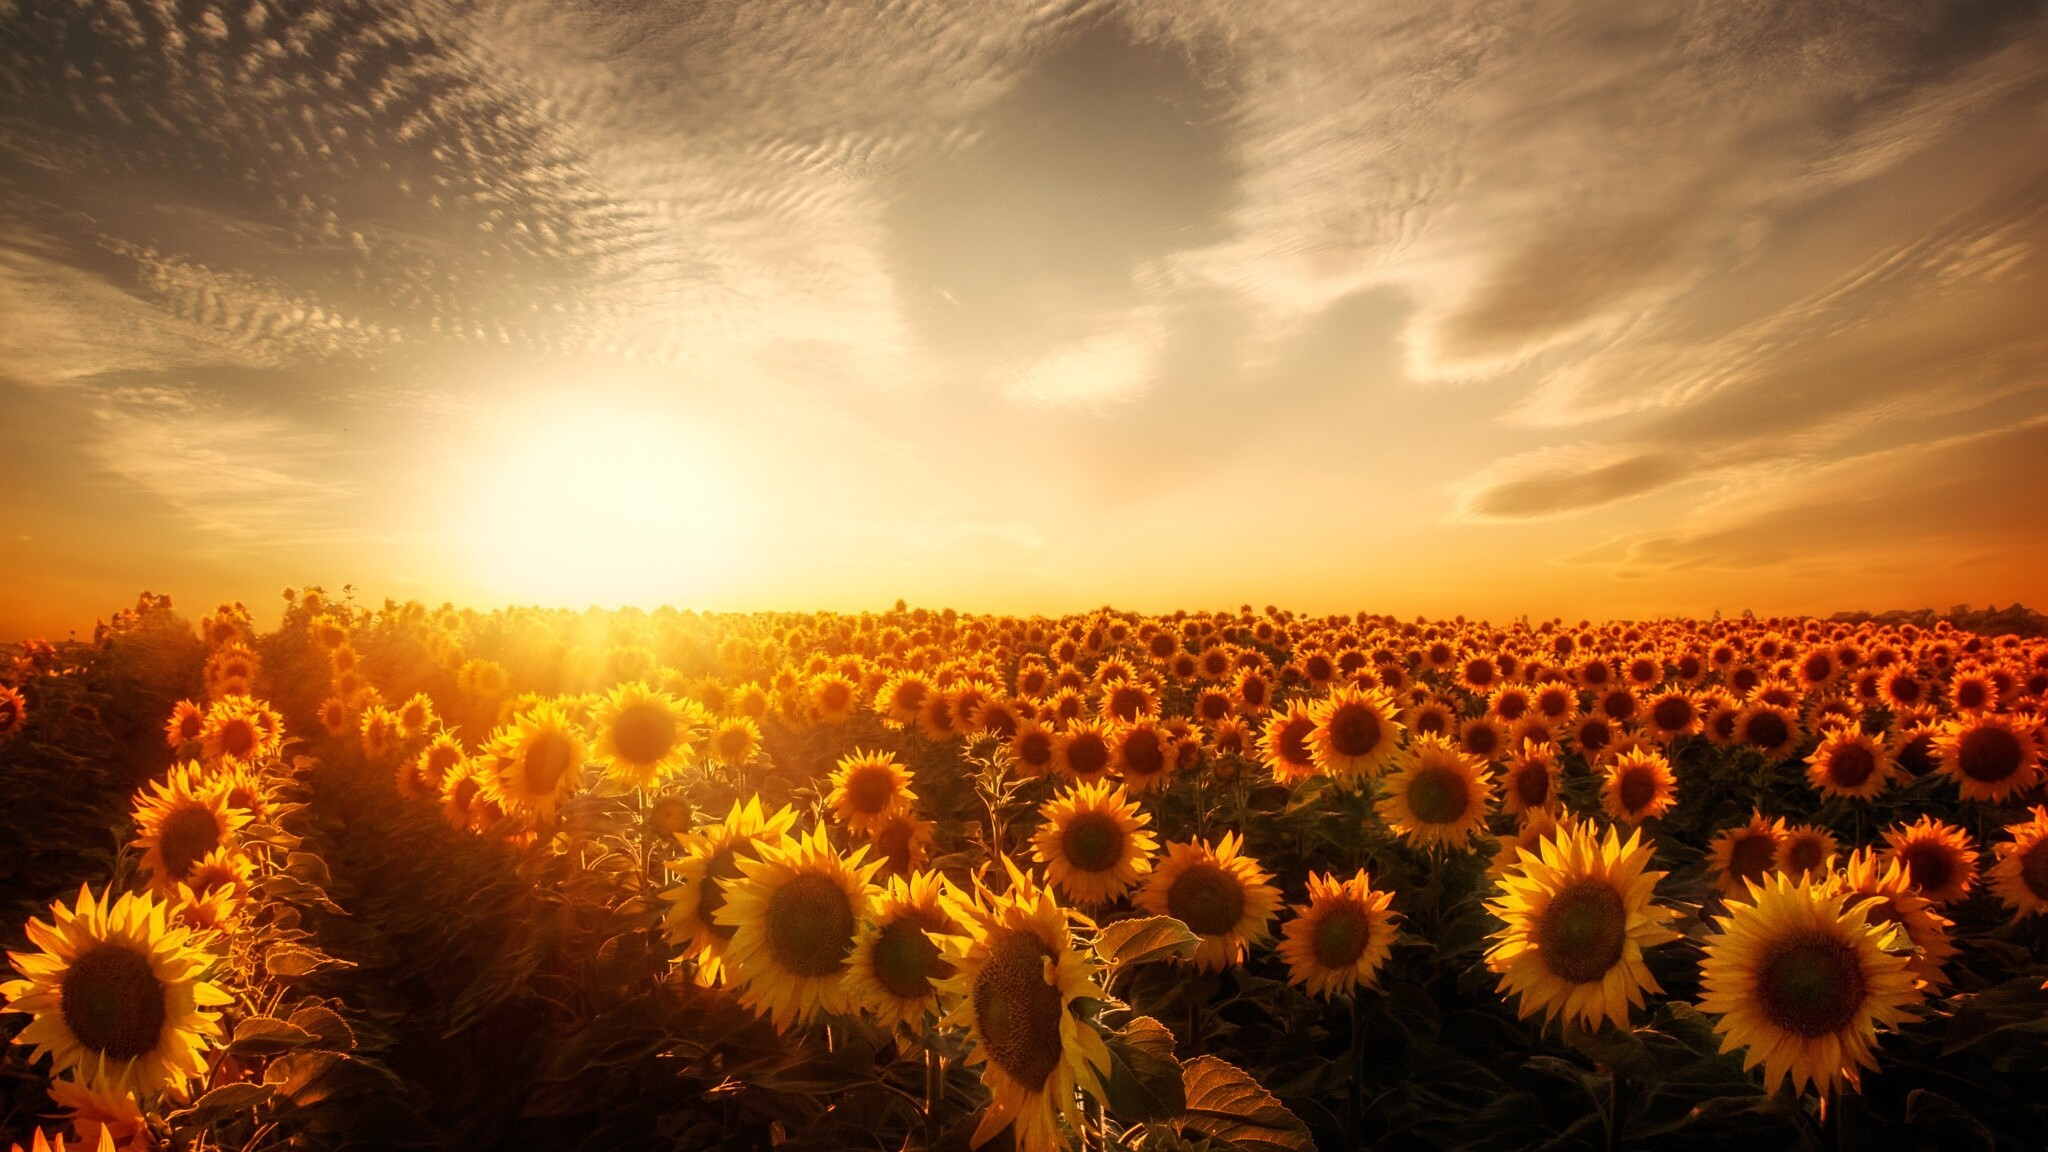 2048x1152 Sunflowers Sunset 2048x1152 Resolution Hd 4k Wallpapers Images Backgrounds Photos And Pictures